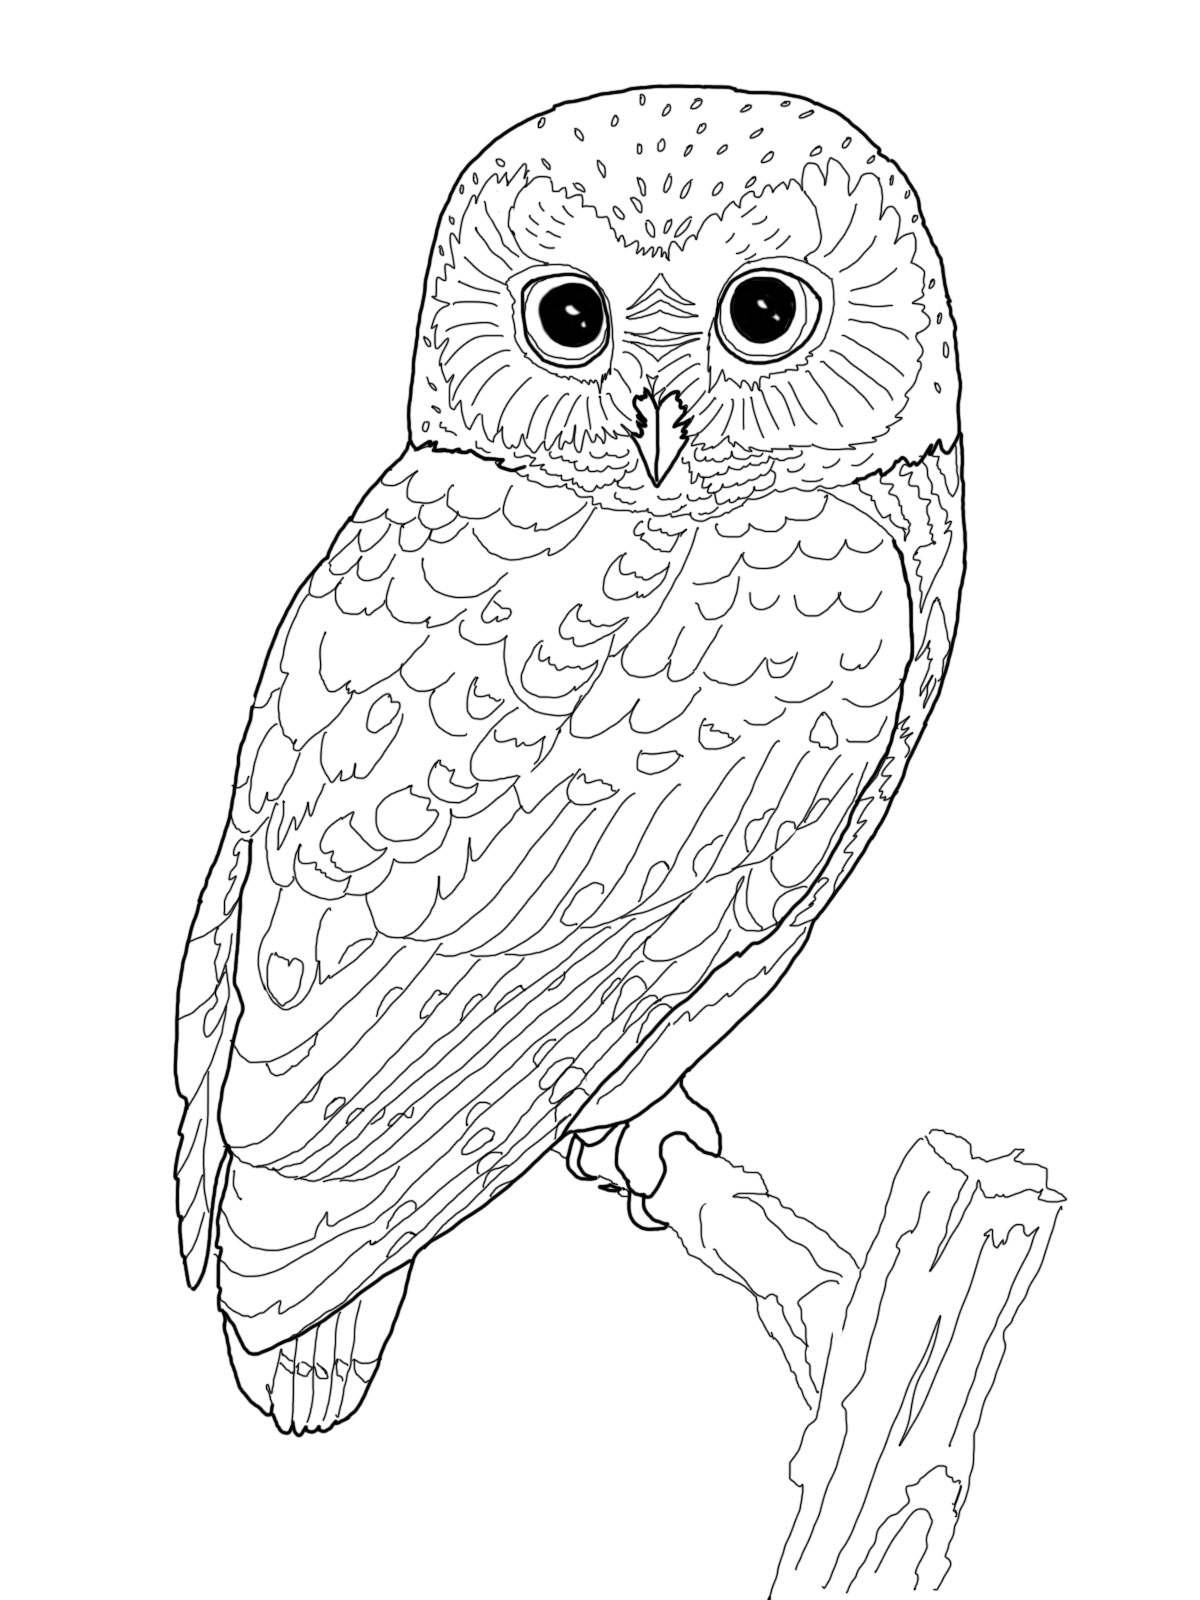 owl coloring picture free owl coloring pages for adults printable to download picture owl coloring